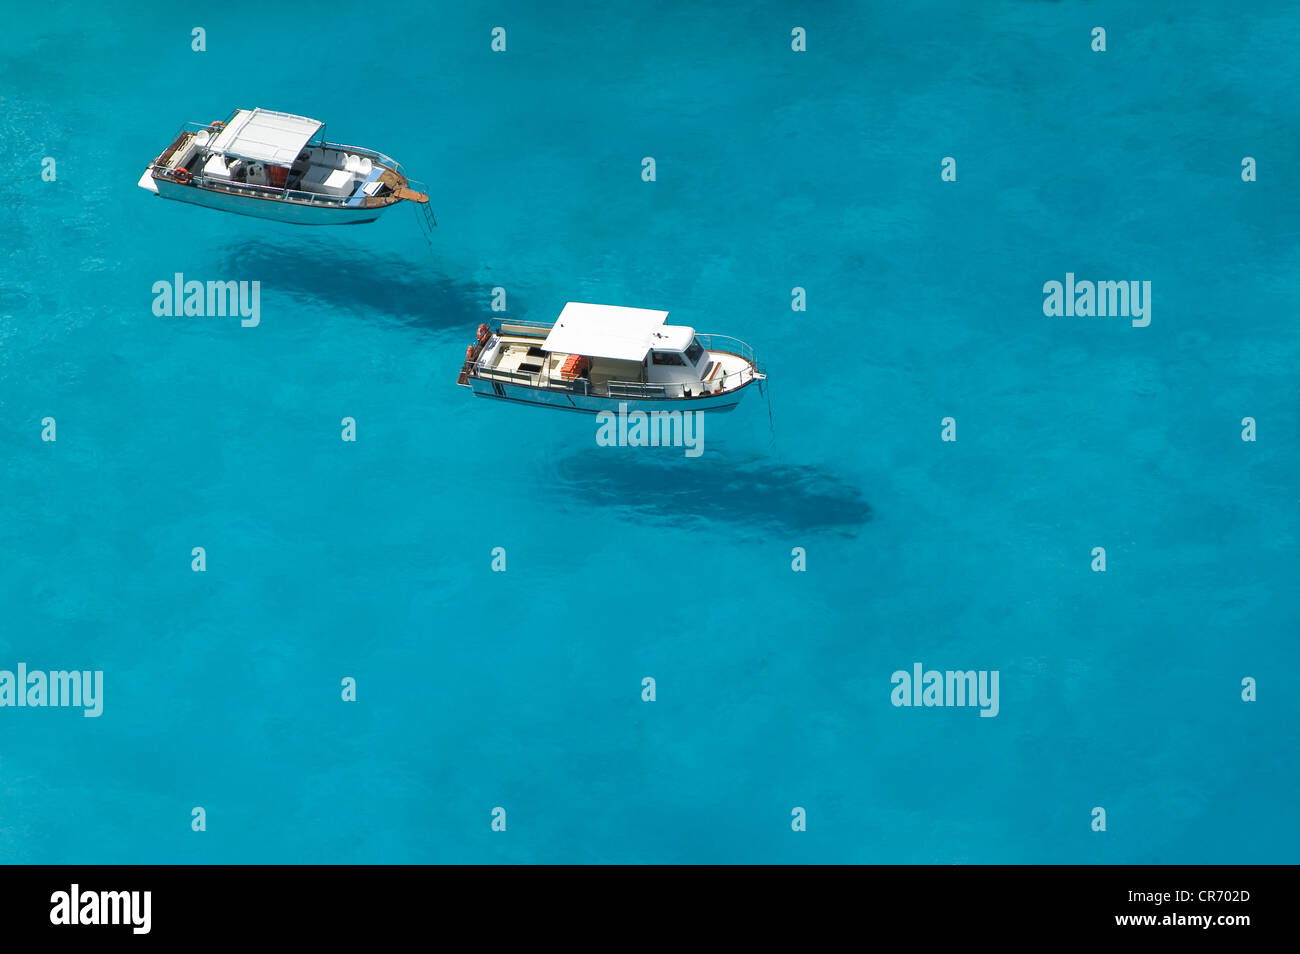 Top view of motorboats in blue, transparent waters of shipwreck bay, Zakynthos - Stock Image